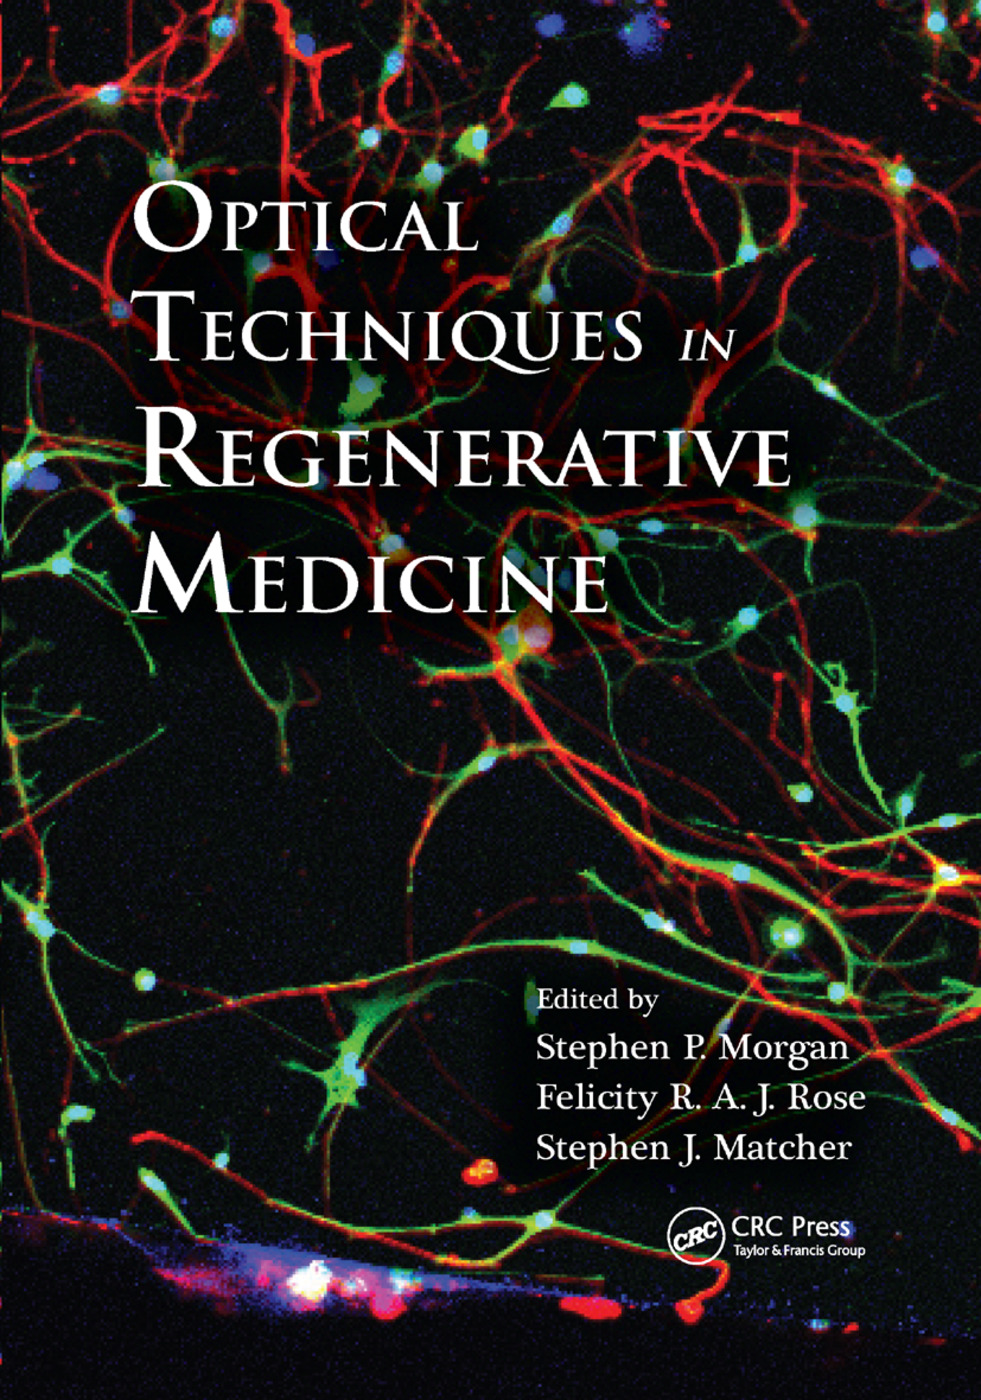 Optical Techniques in Regenerative Medicine